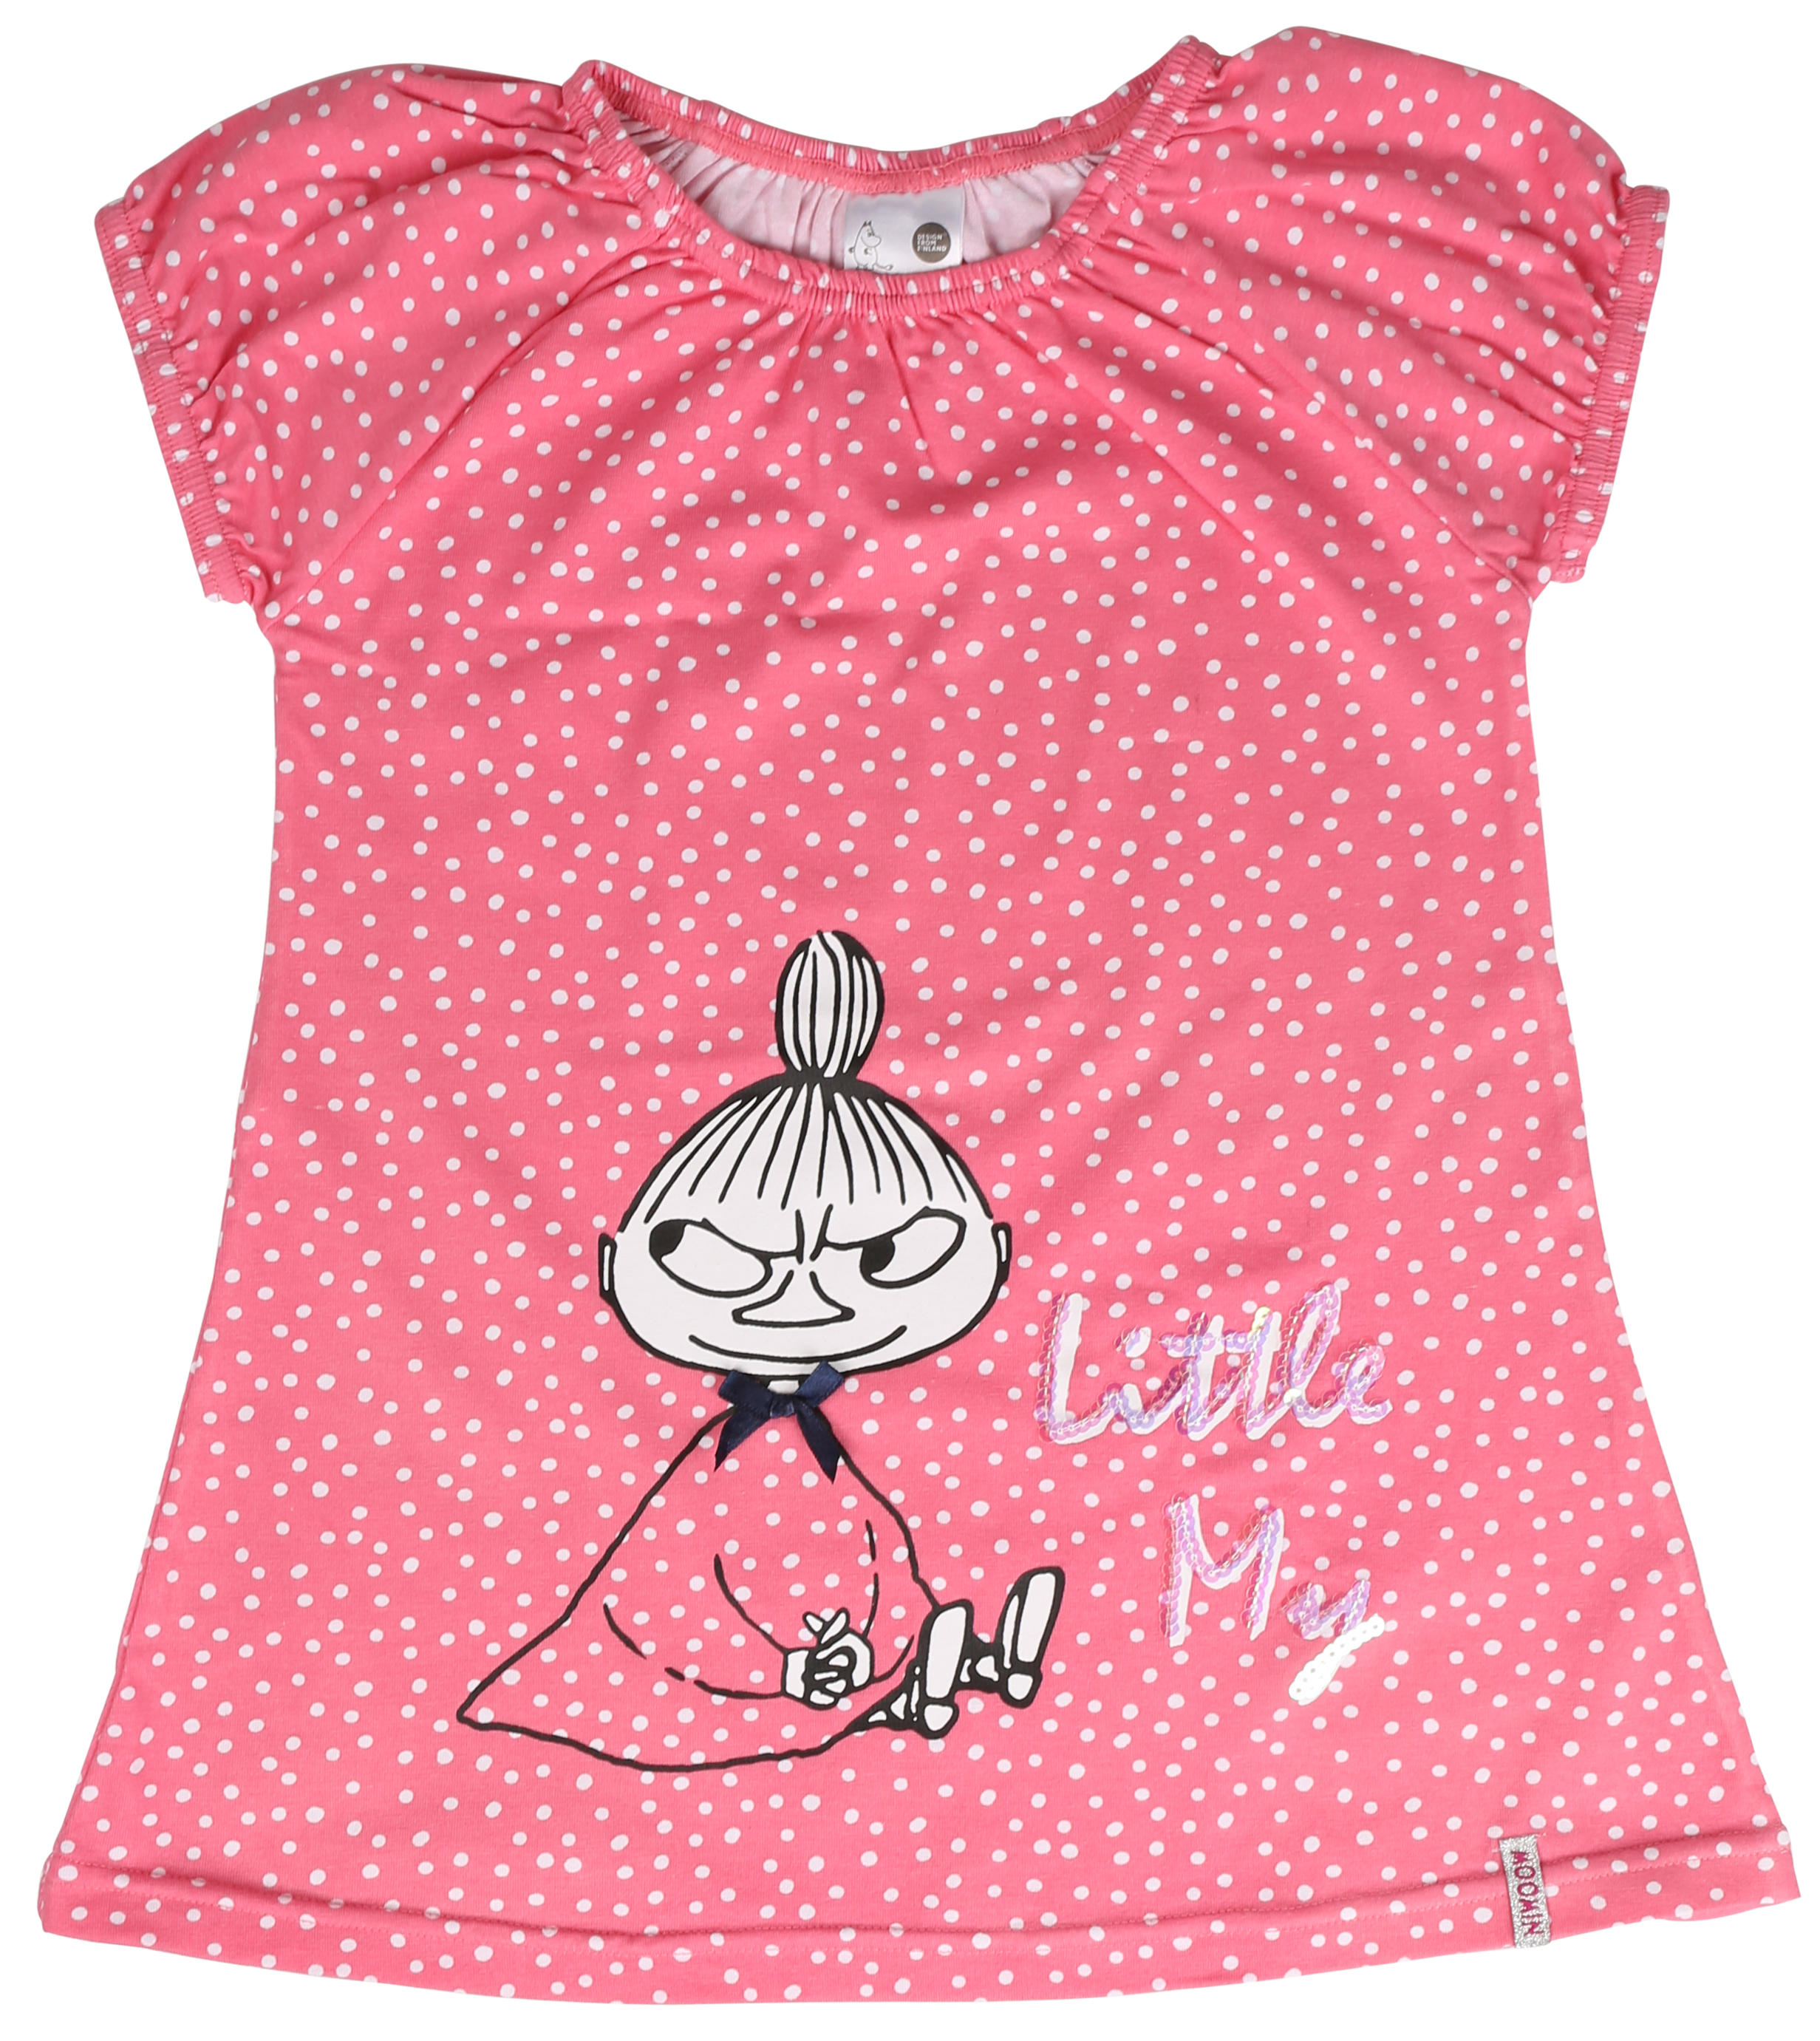 Martinex Little My Polkadot Tunic